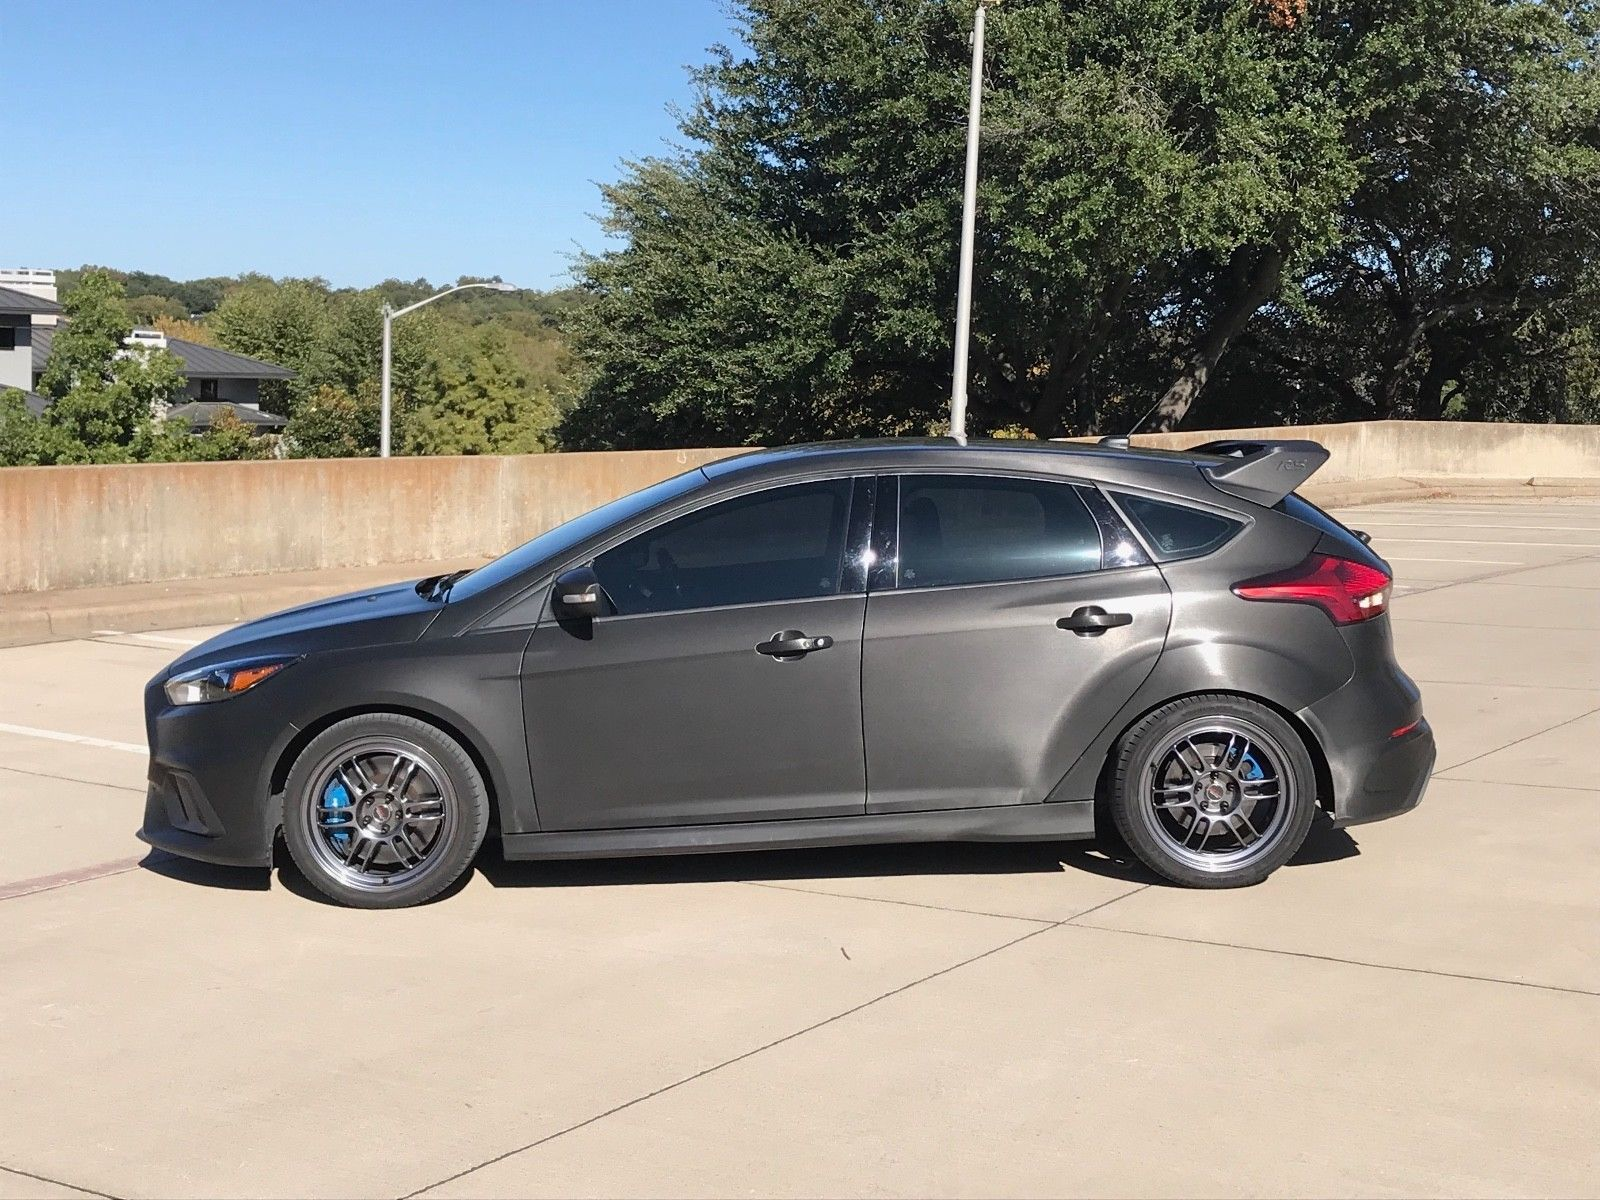 Awesome 2016 Ford Focus Rs Extended Factory Warranty Full Body Wrap 2018 2019